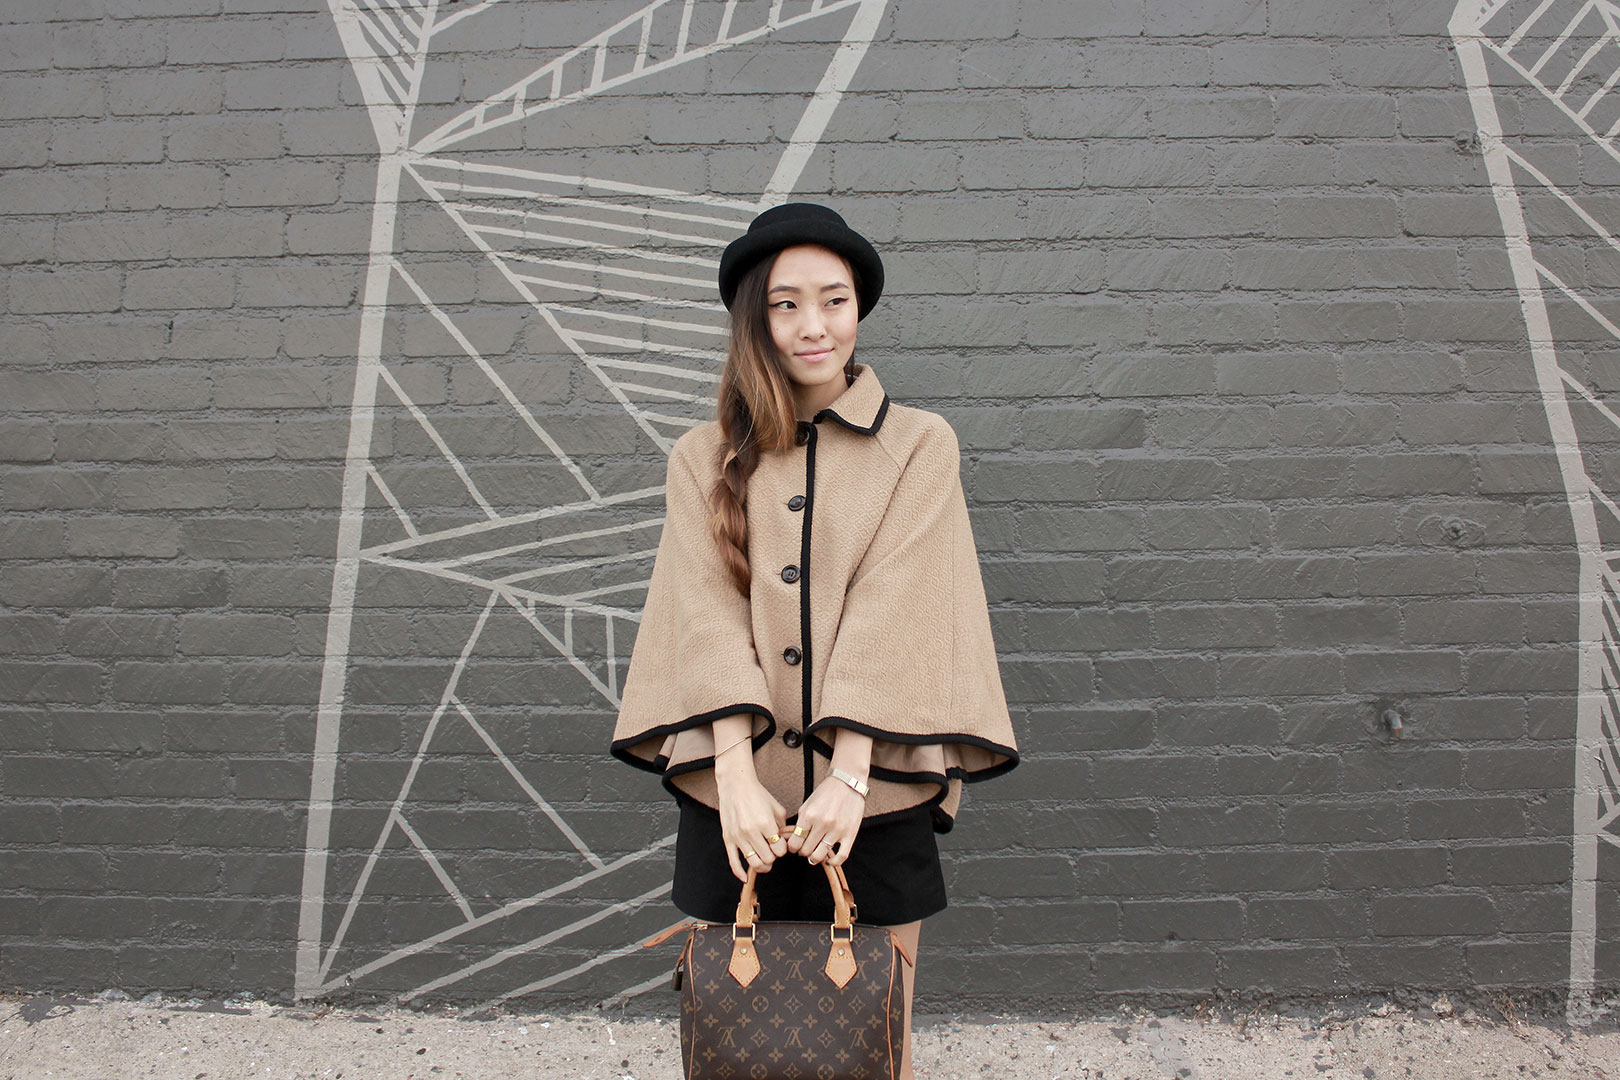 Forever 21 cape coat, Urban Outfitters hat,  Zara high-waisted shorts, Zara loafers, and Louis Vuitton speedy bag